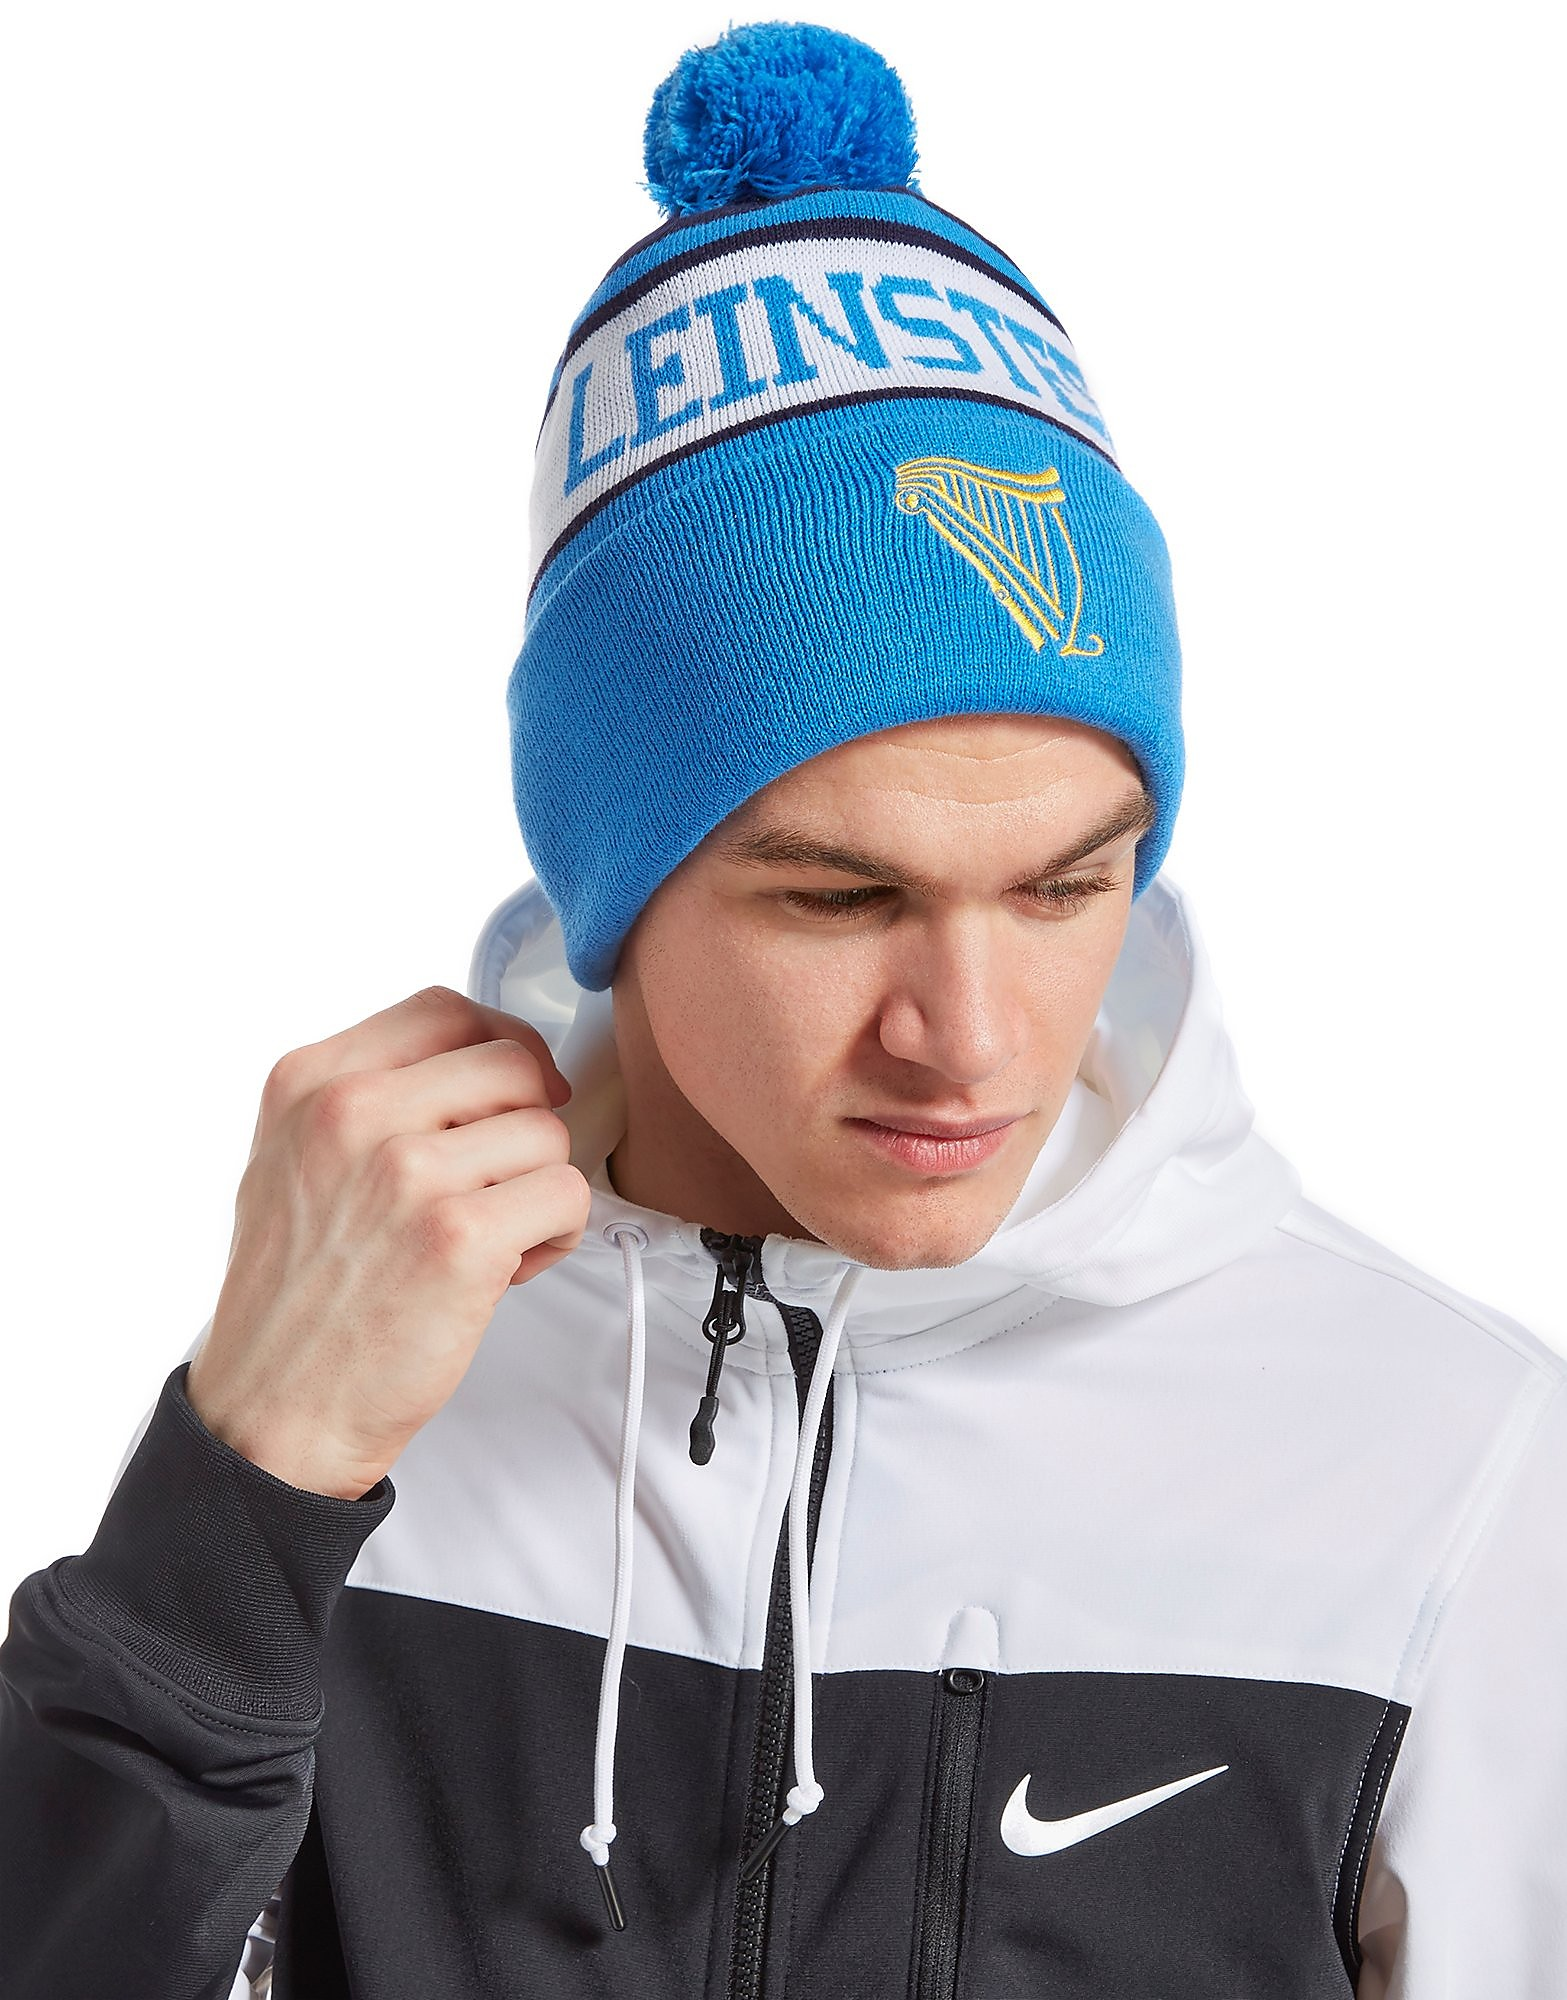 Official Team Leinster Beanie Hat